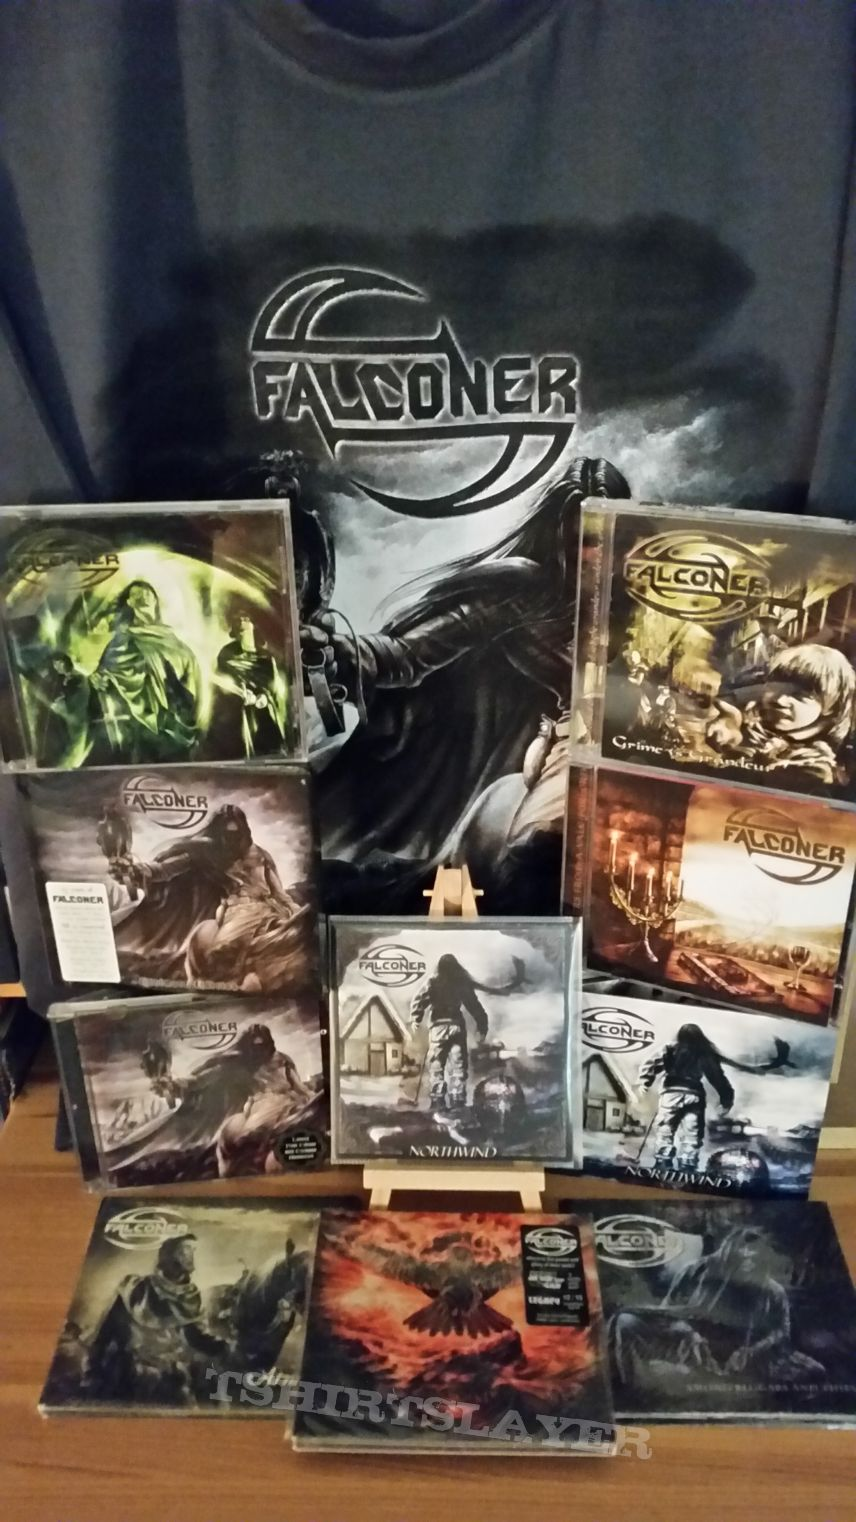 Falconer collection